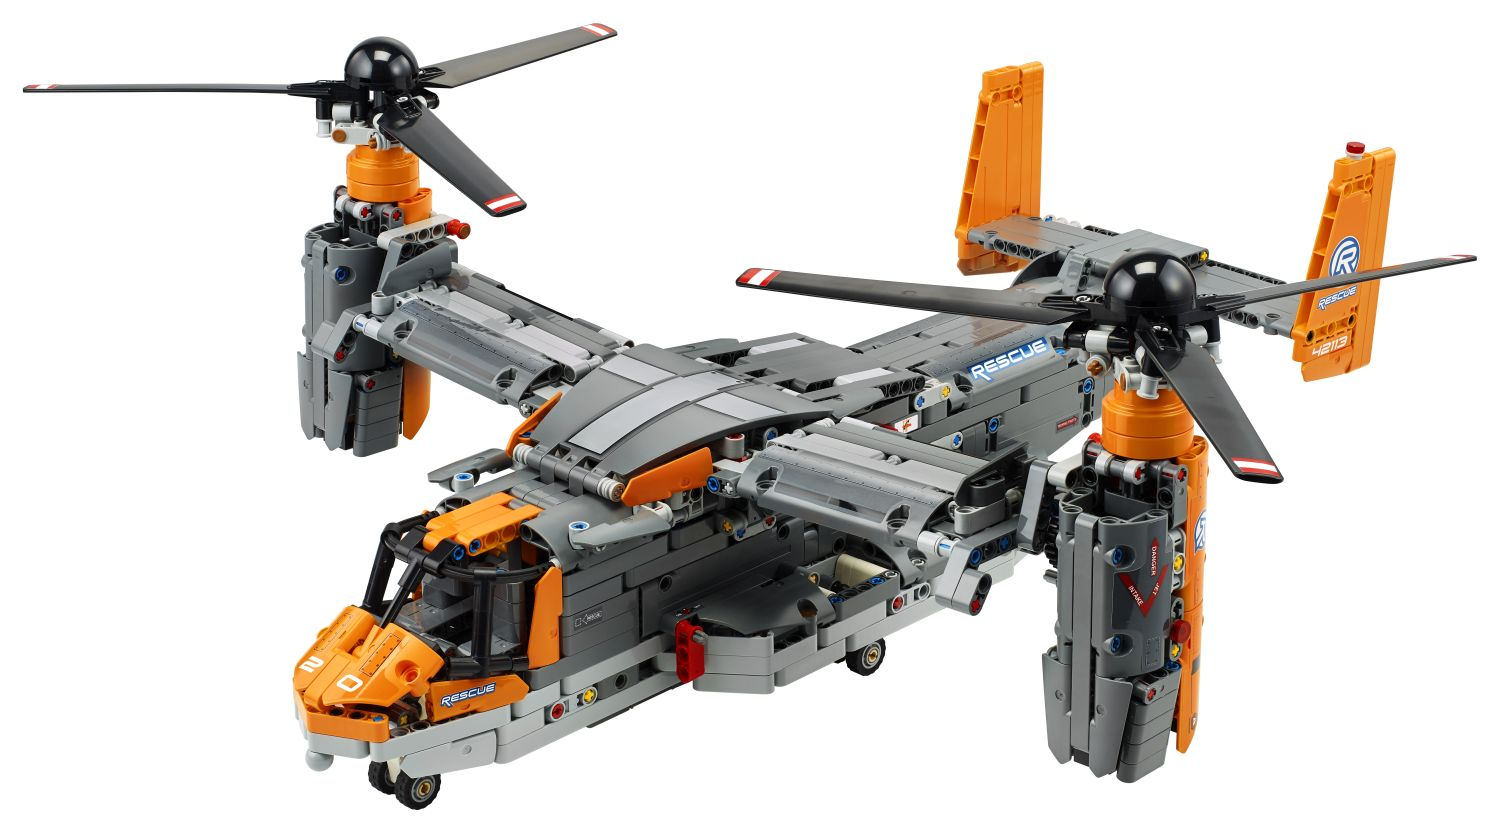 Brickfinder - LEGO Technic 2HY 2020 Official Images!